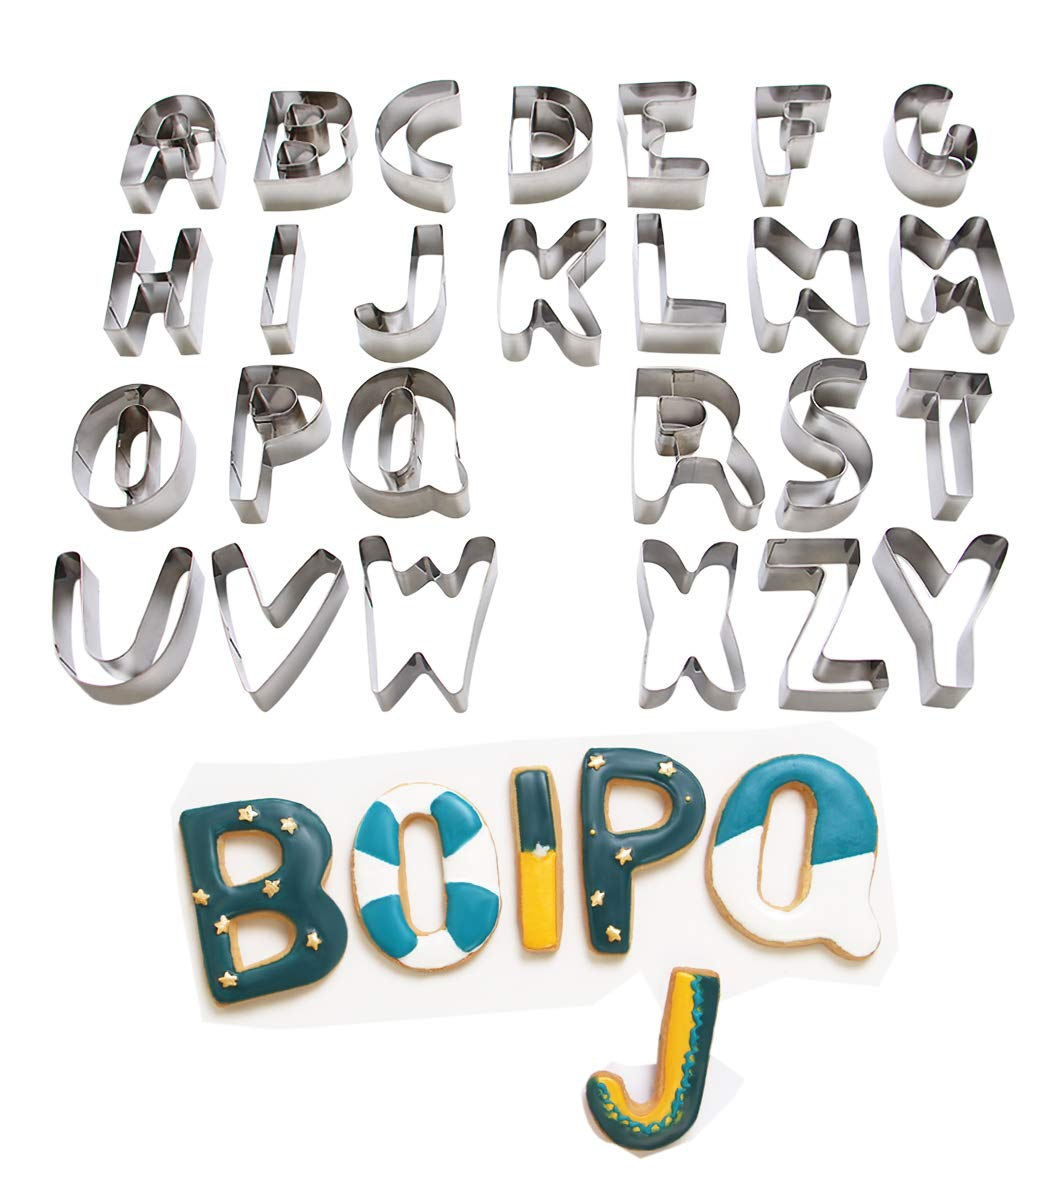 ShengHai 26-Piece Large Alphabet Cookie Cutter Set (A - Z), Stainless Steel Decorating Tools Letters Fondant Cutter by ShengHai (Image #8)